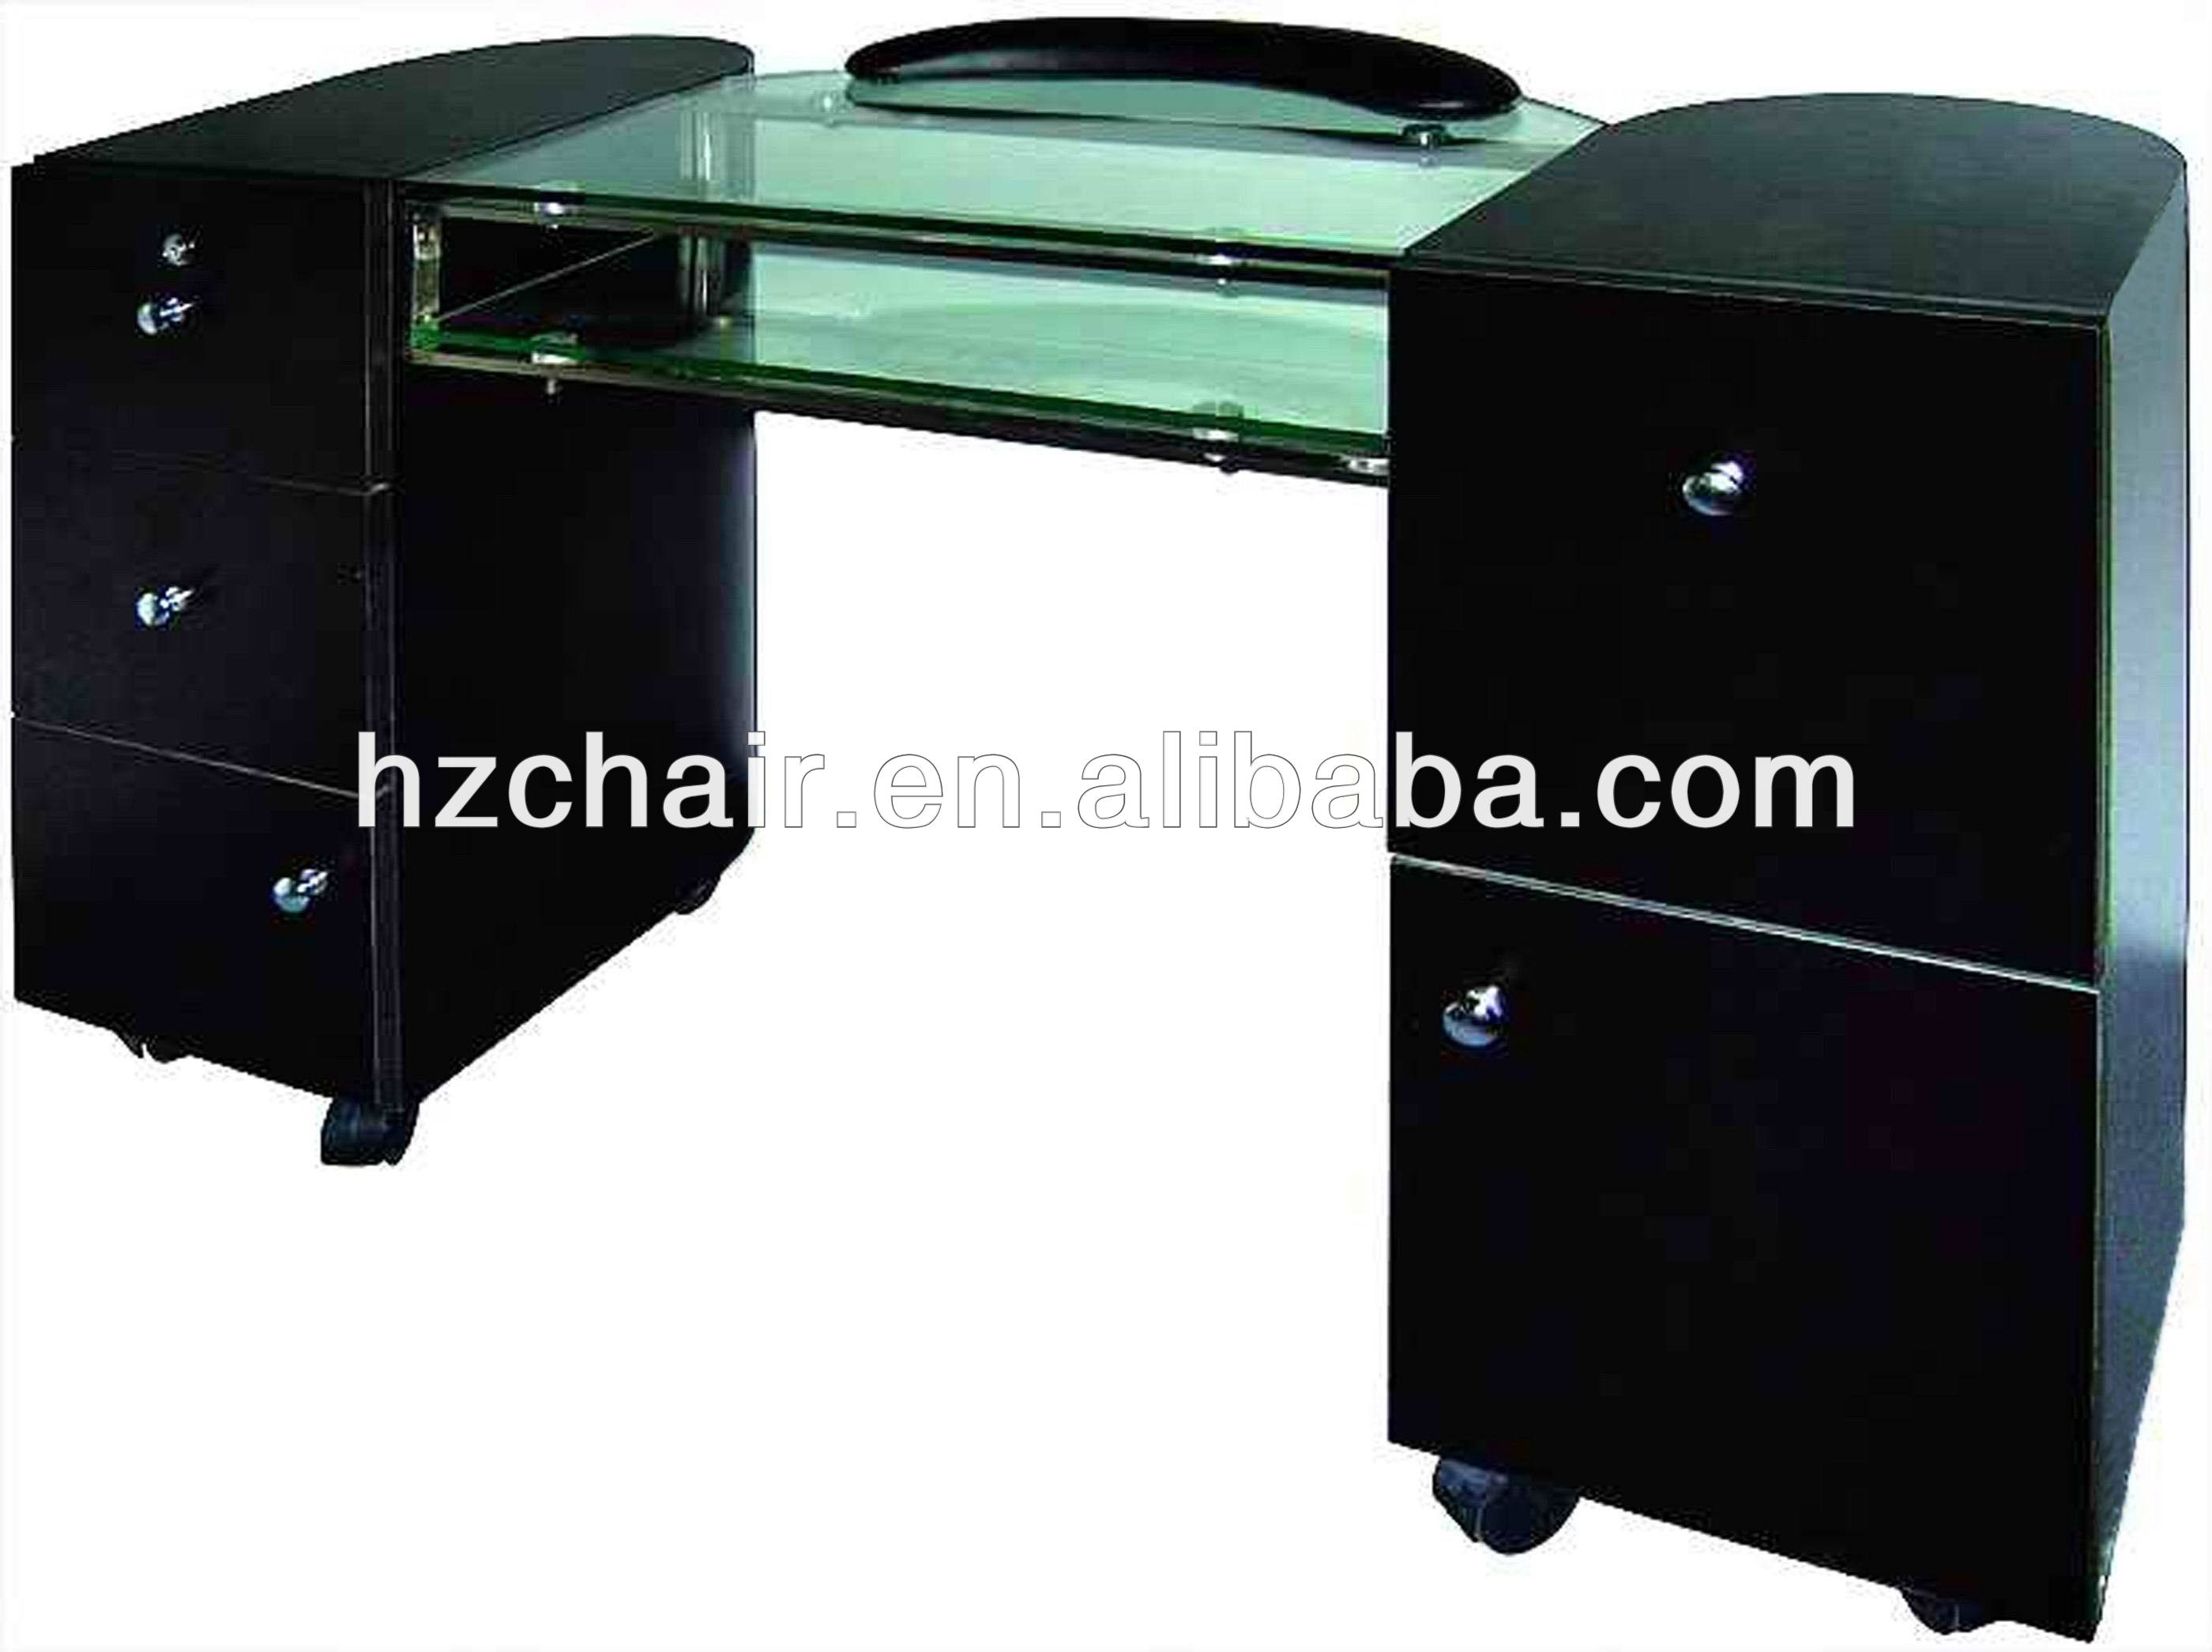 manicure tables wholesale manicure tables wholesale suppliers and at alibabacom - Manicure Table